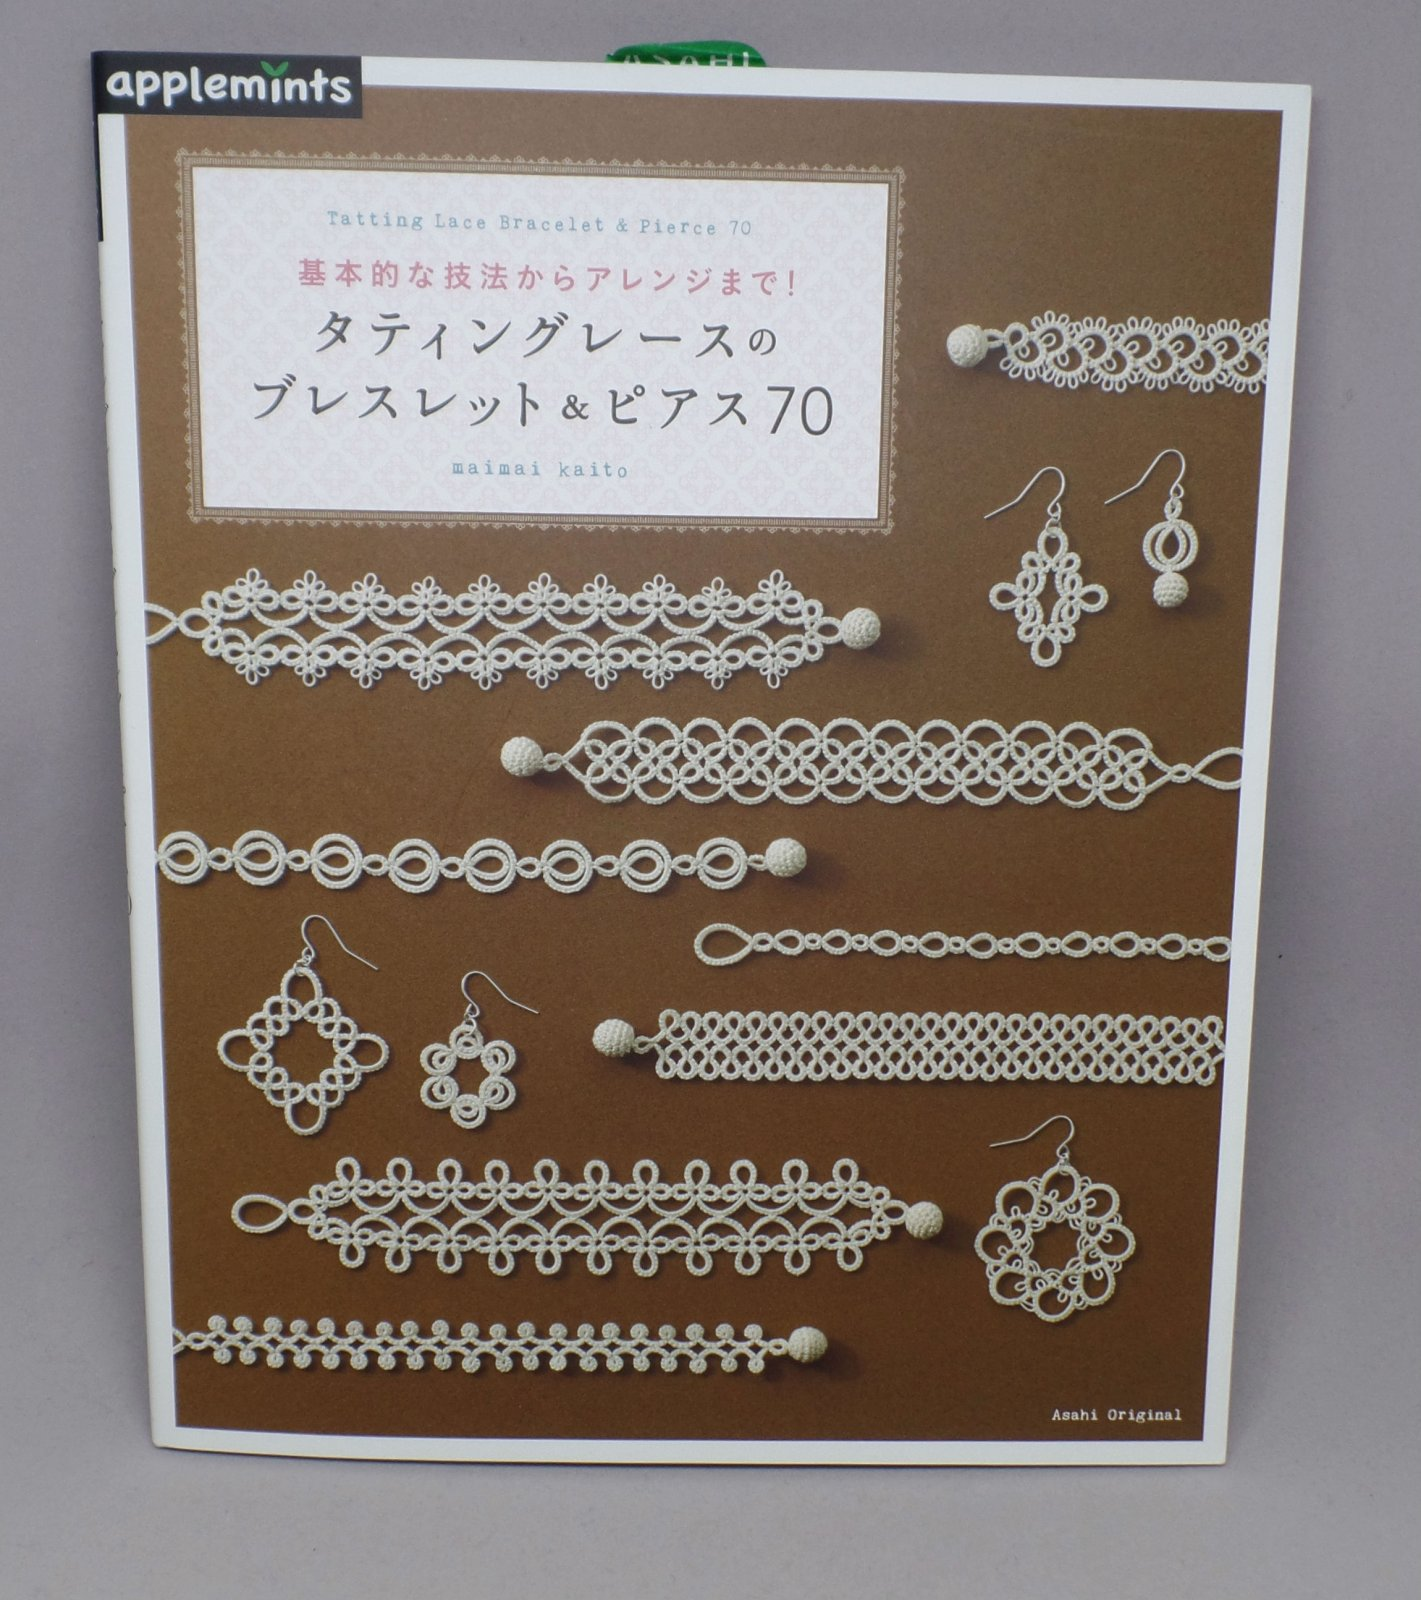 Tatting Lace Bracelet and Earrings (Japanese)